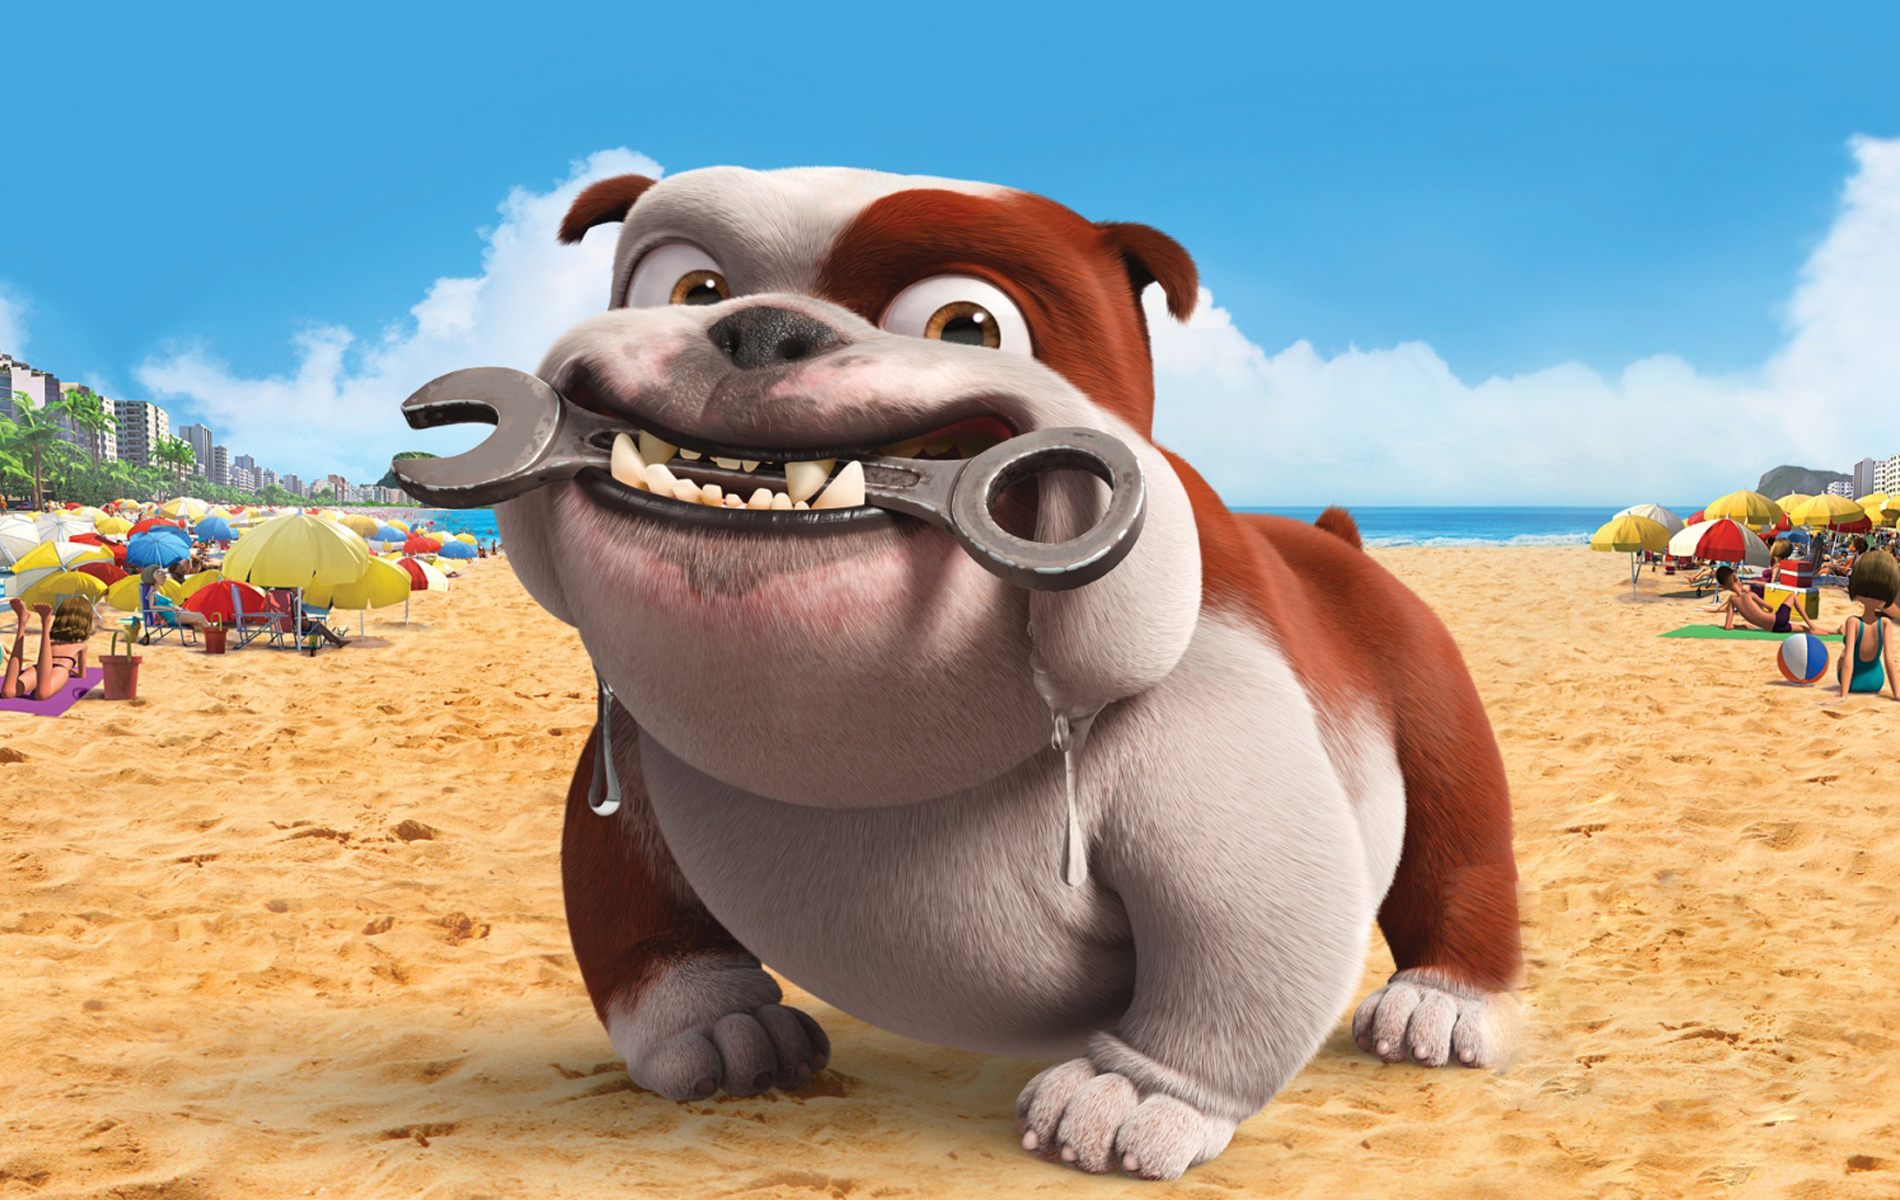 Funny cartoon dog pictures 23 high resolution wallpaper - Beauti ful carteans pic hd ...